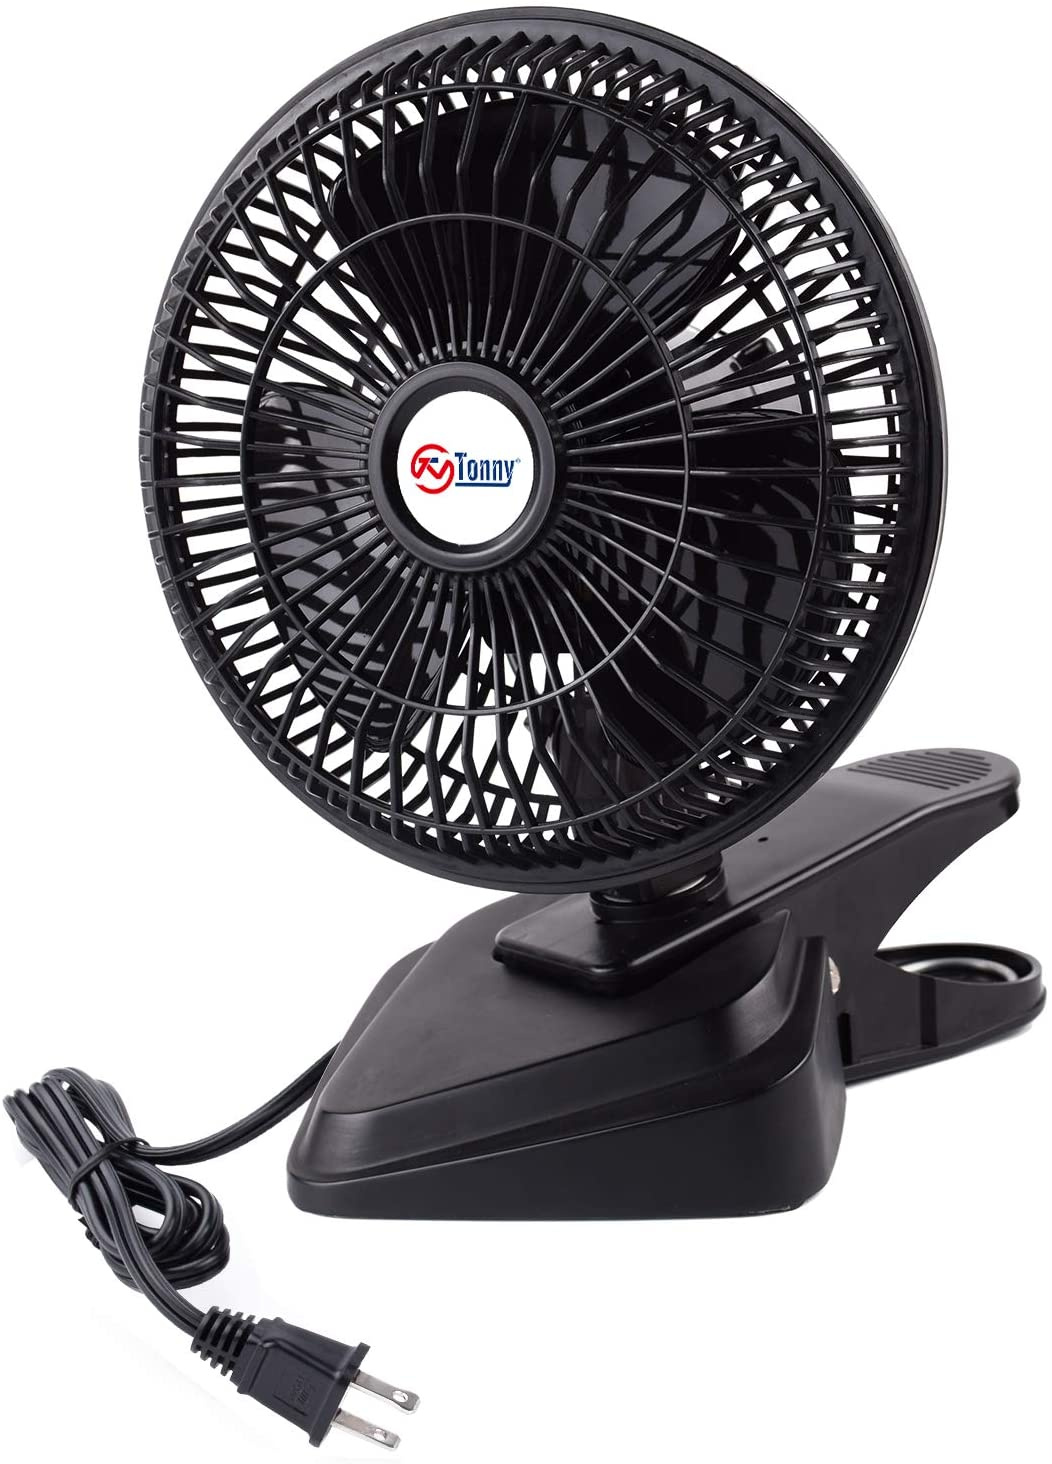 TN TONNY Convertible 6-Inch Desk & Clip Fan Two Quiet Speeds, Household Table Fans AC Personal Fans with 4 Feet Cord, Ideal for The Home, Office, Dorm, Black